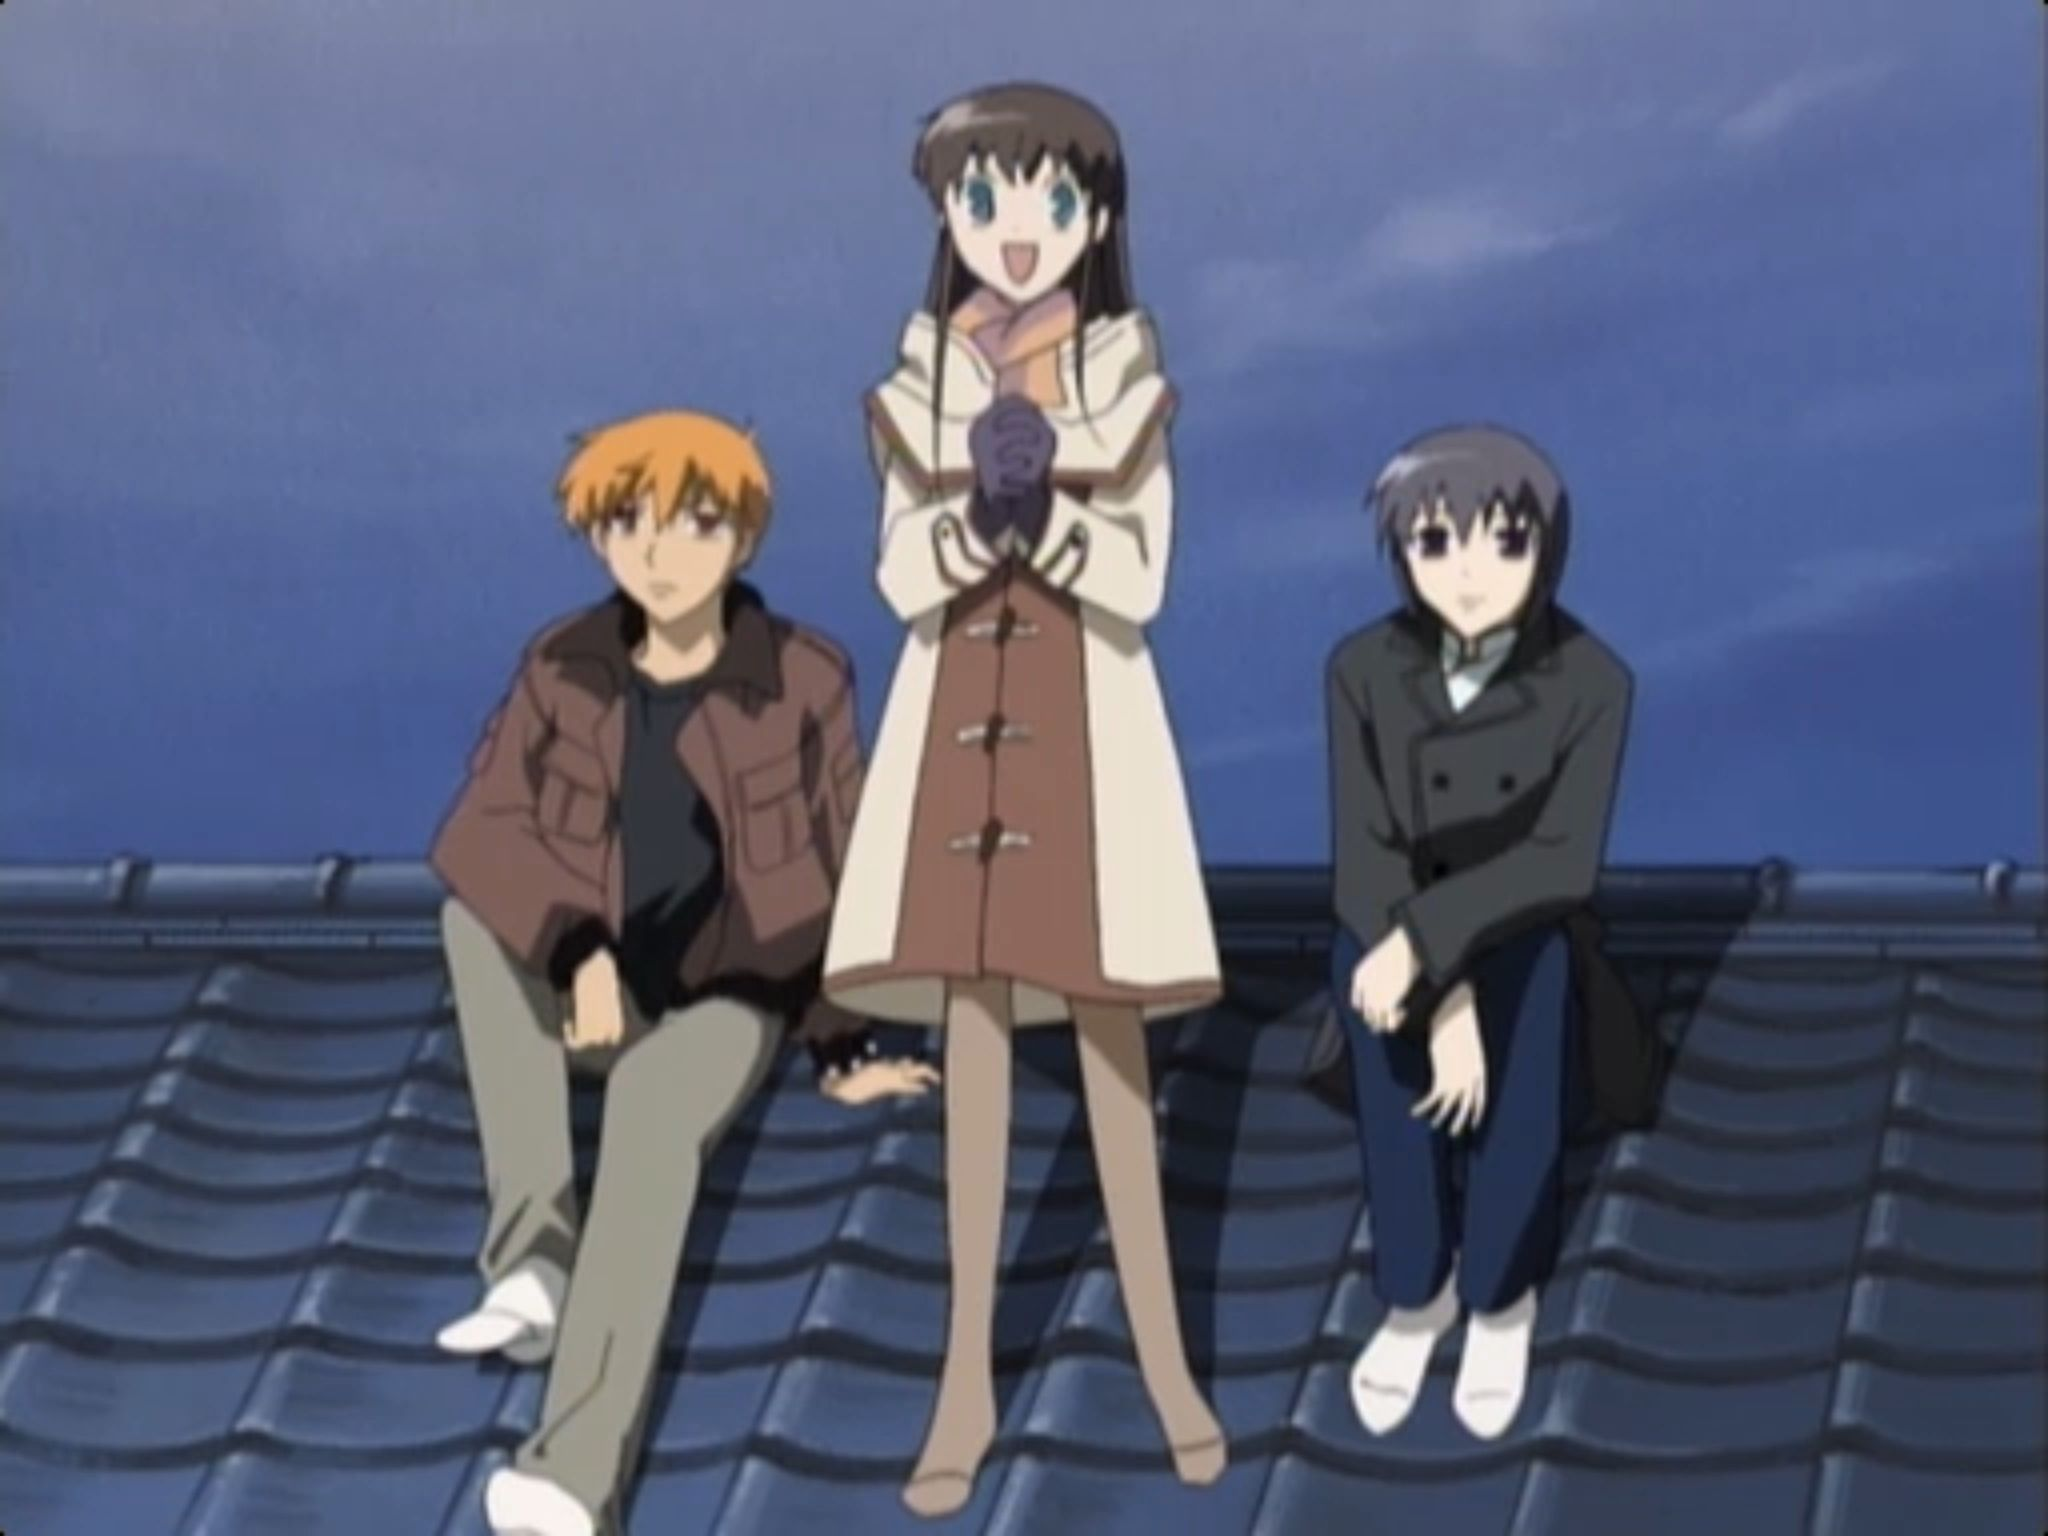 """Fruits Basket"" Kyo, Tohru, and Yuki watching the New"